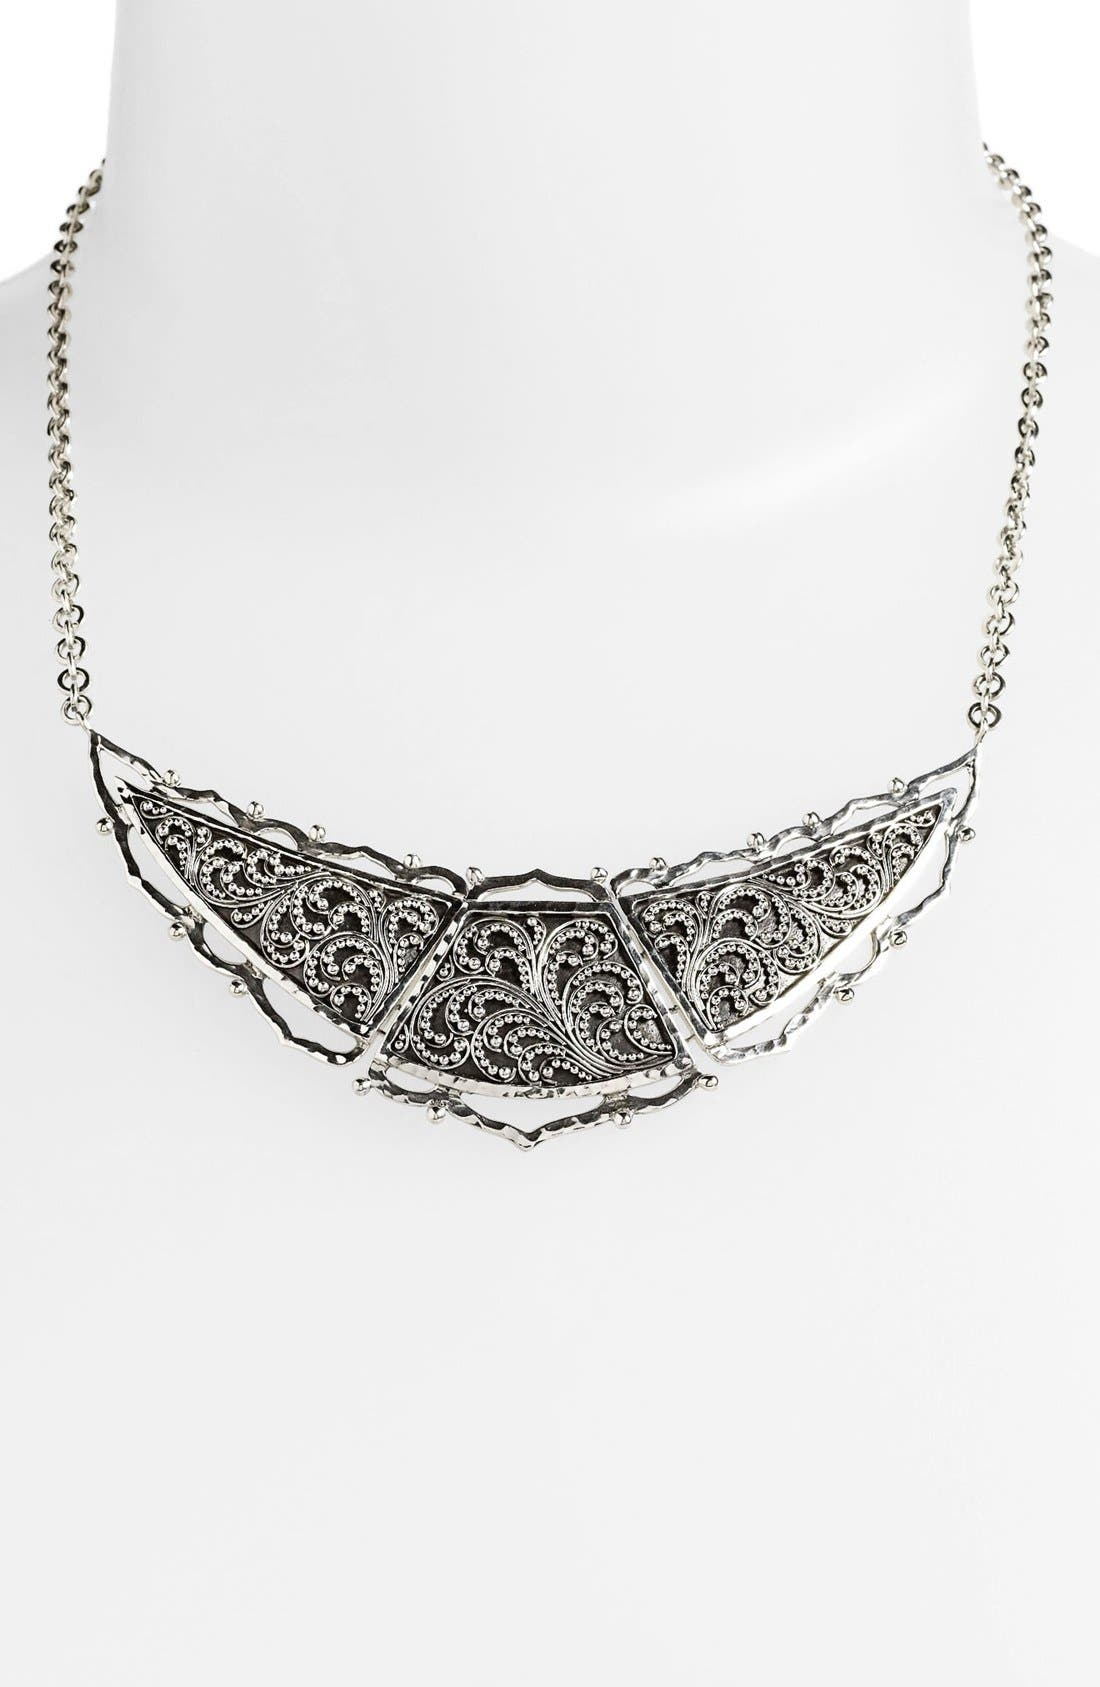 Main Image - Lois Hill Large Granulated Shield Collar Necklace